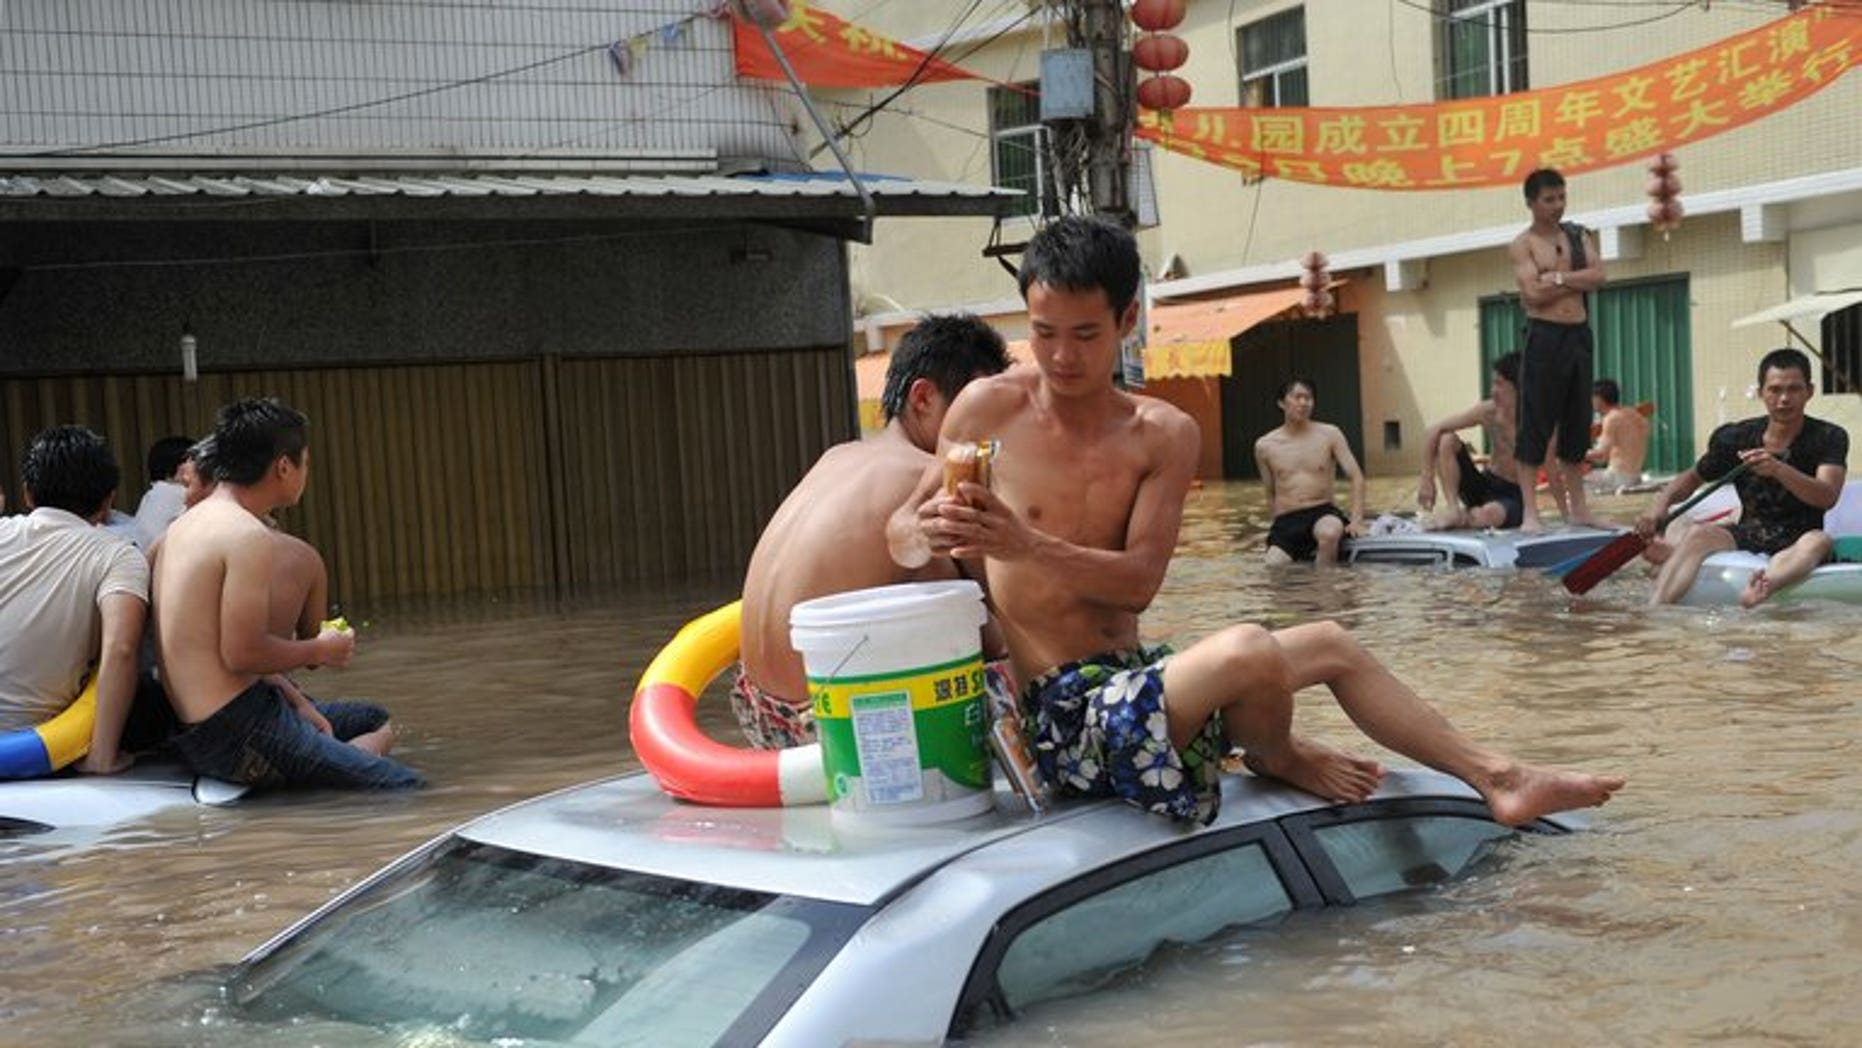 Residents sit on top of vehicles submerged by water in the flood-hit Chaonan district of Shantou, in southern China's Guangdong province, August 19, 2013. Heavy rains killed 21 construction workers as flooding spread to northwest China, state media said Wednesday, after severe weather in other parts of the country left more than 130 dead.